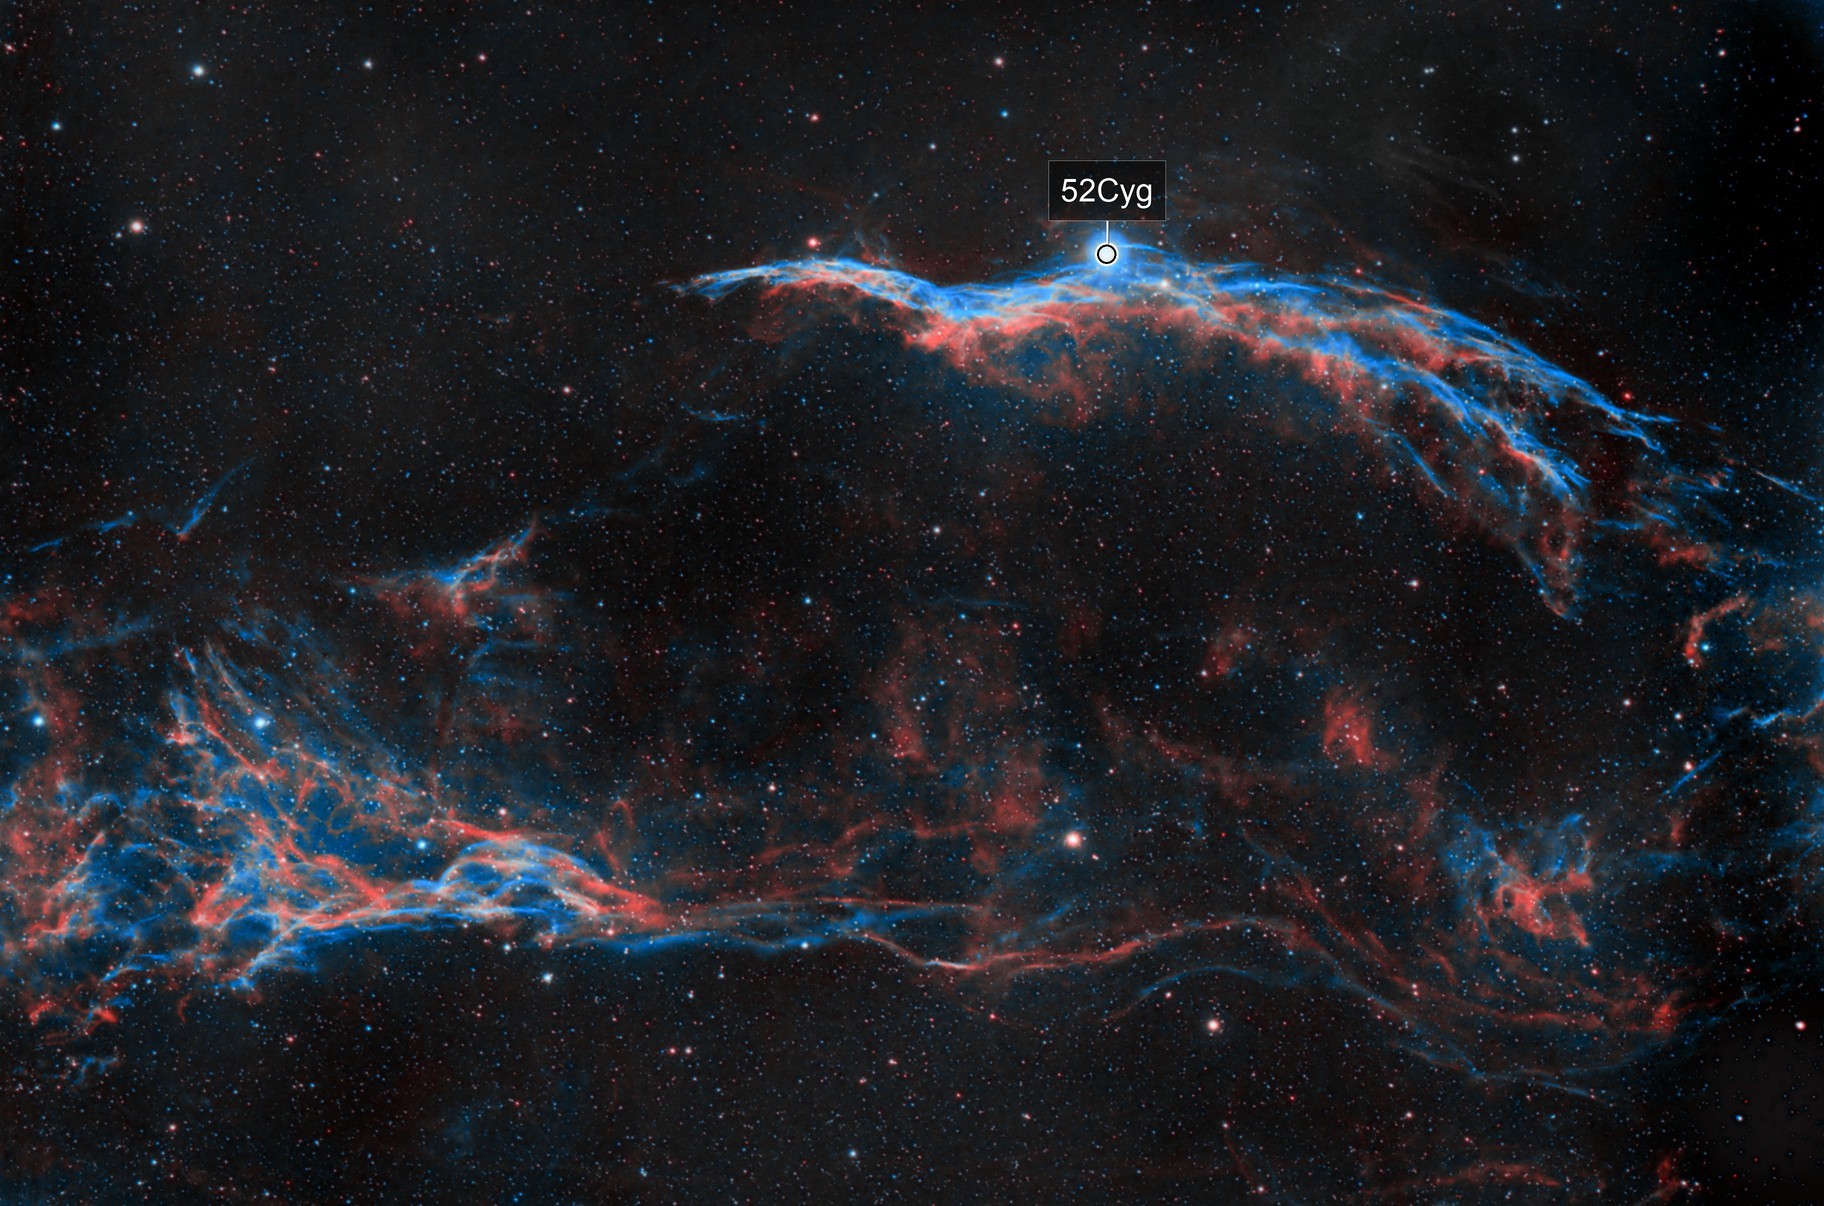 Western Veil Nebula and Pickering's Triangle in HOO